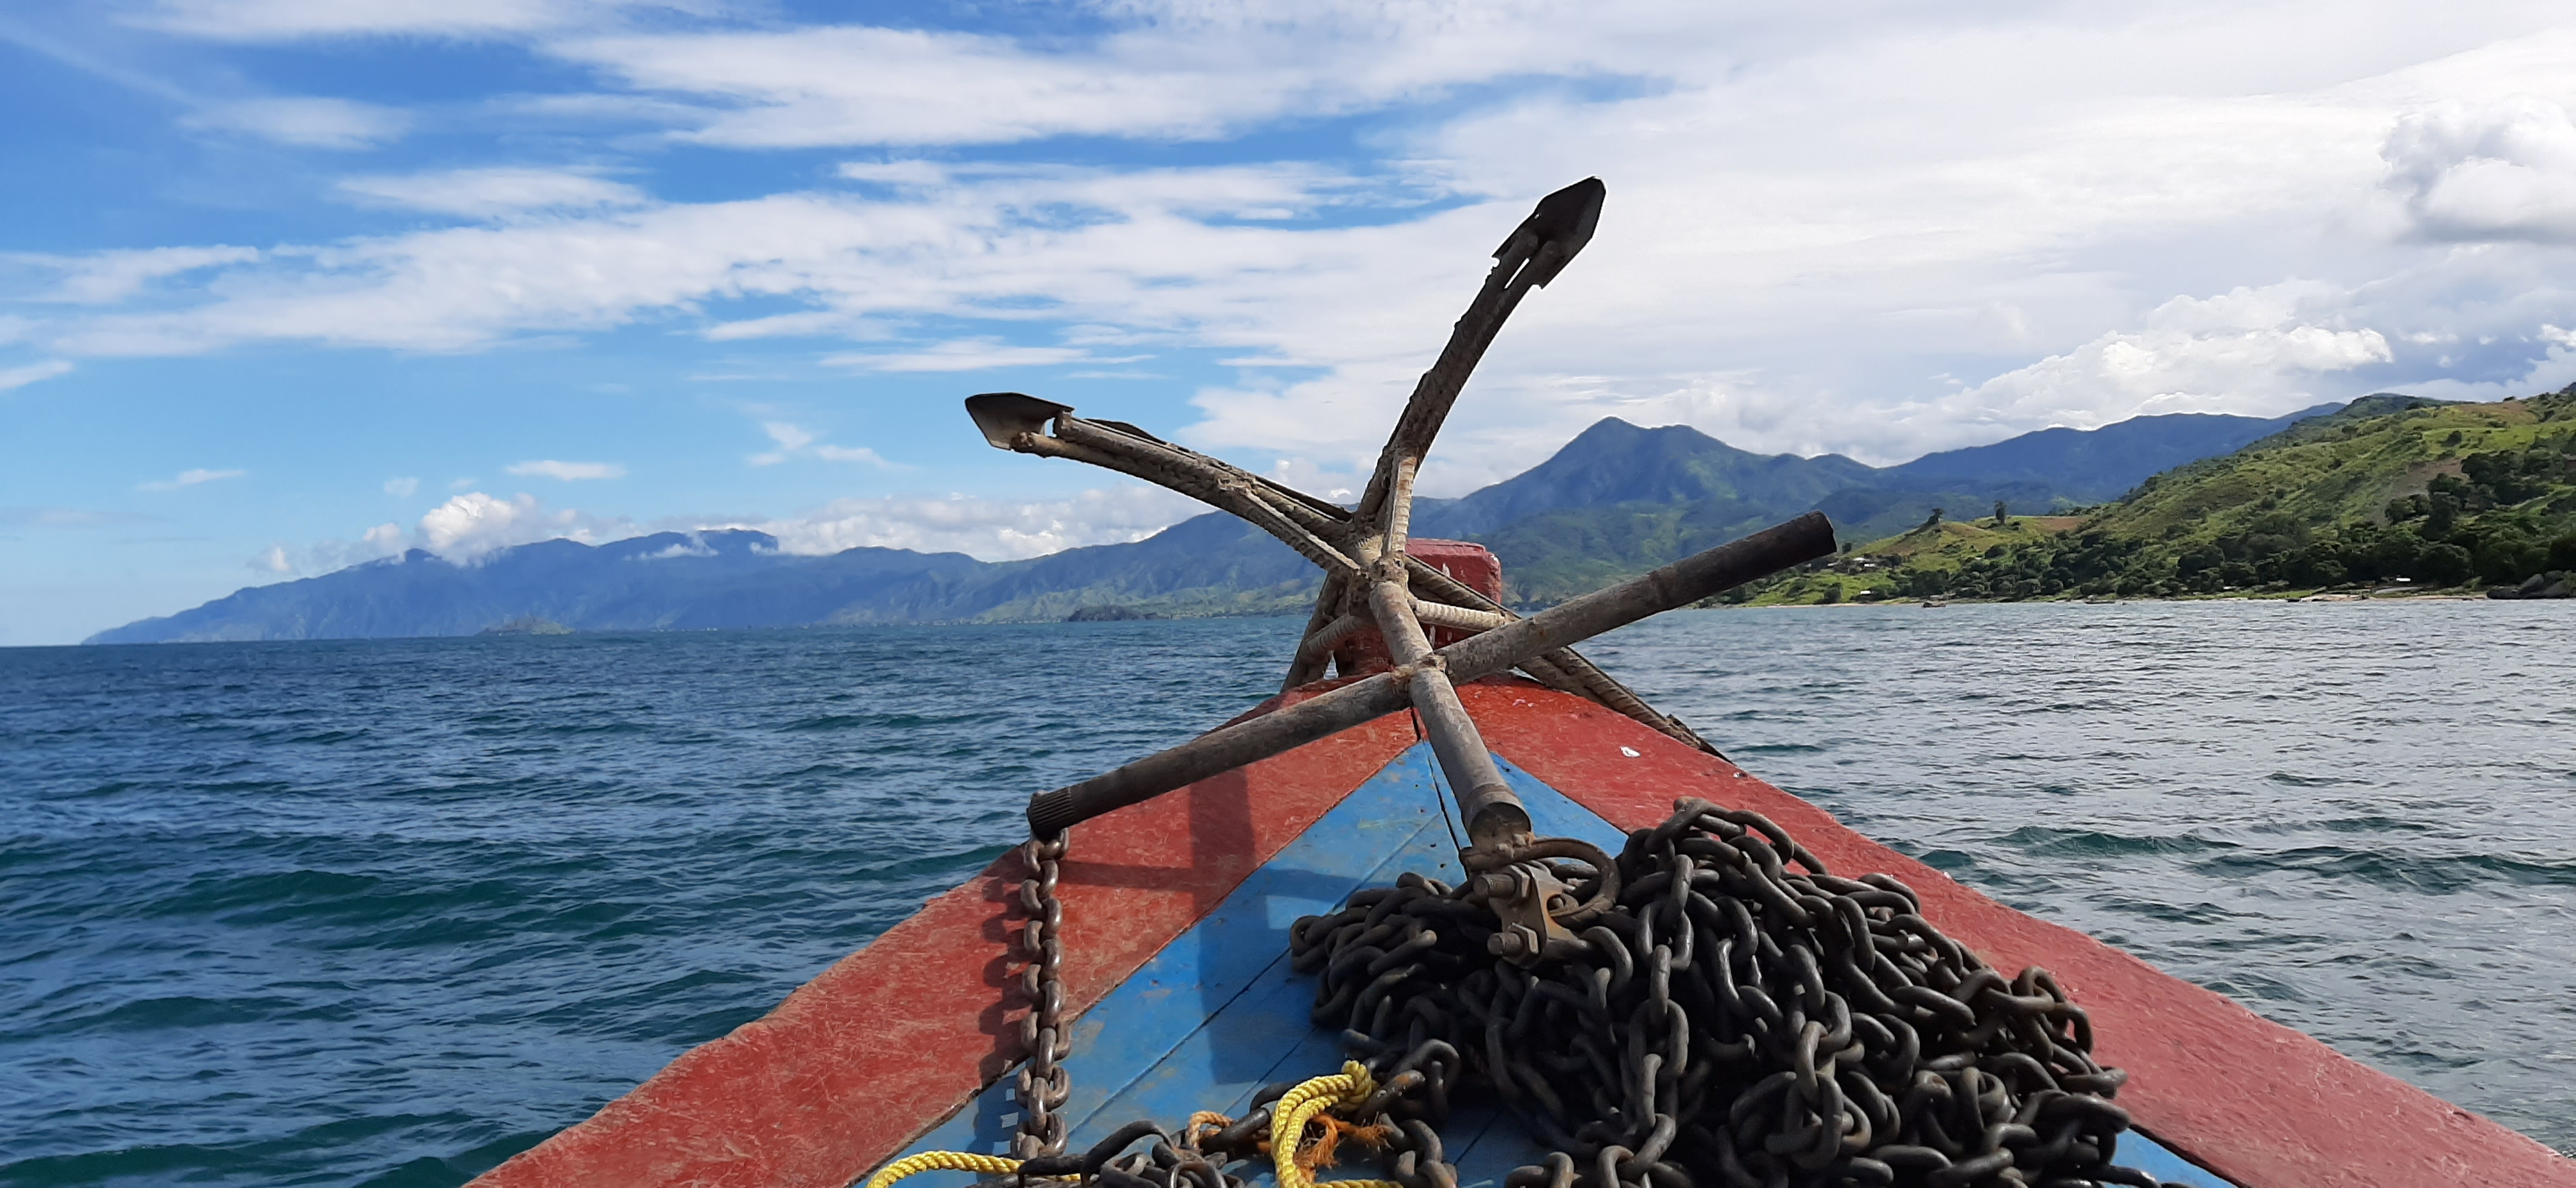 View from the front of a small boat on Lake Malawi